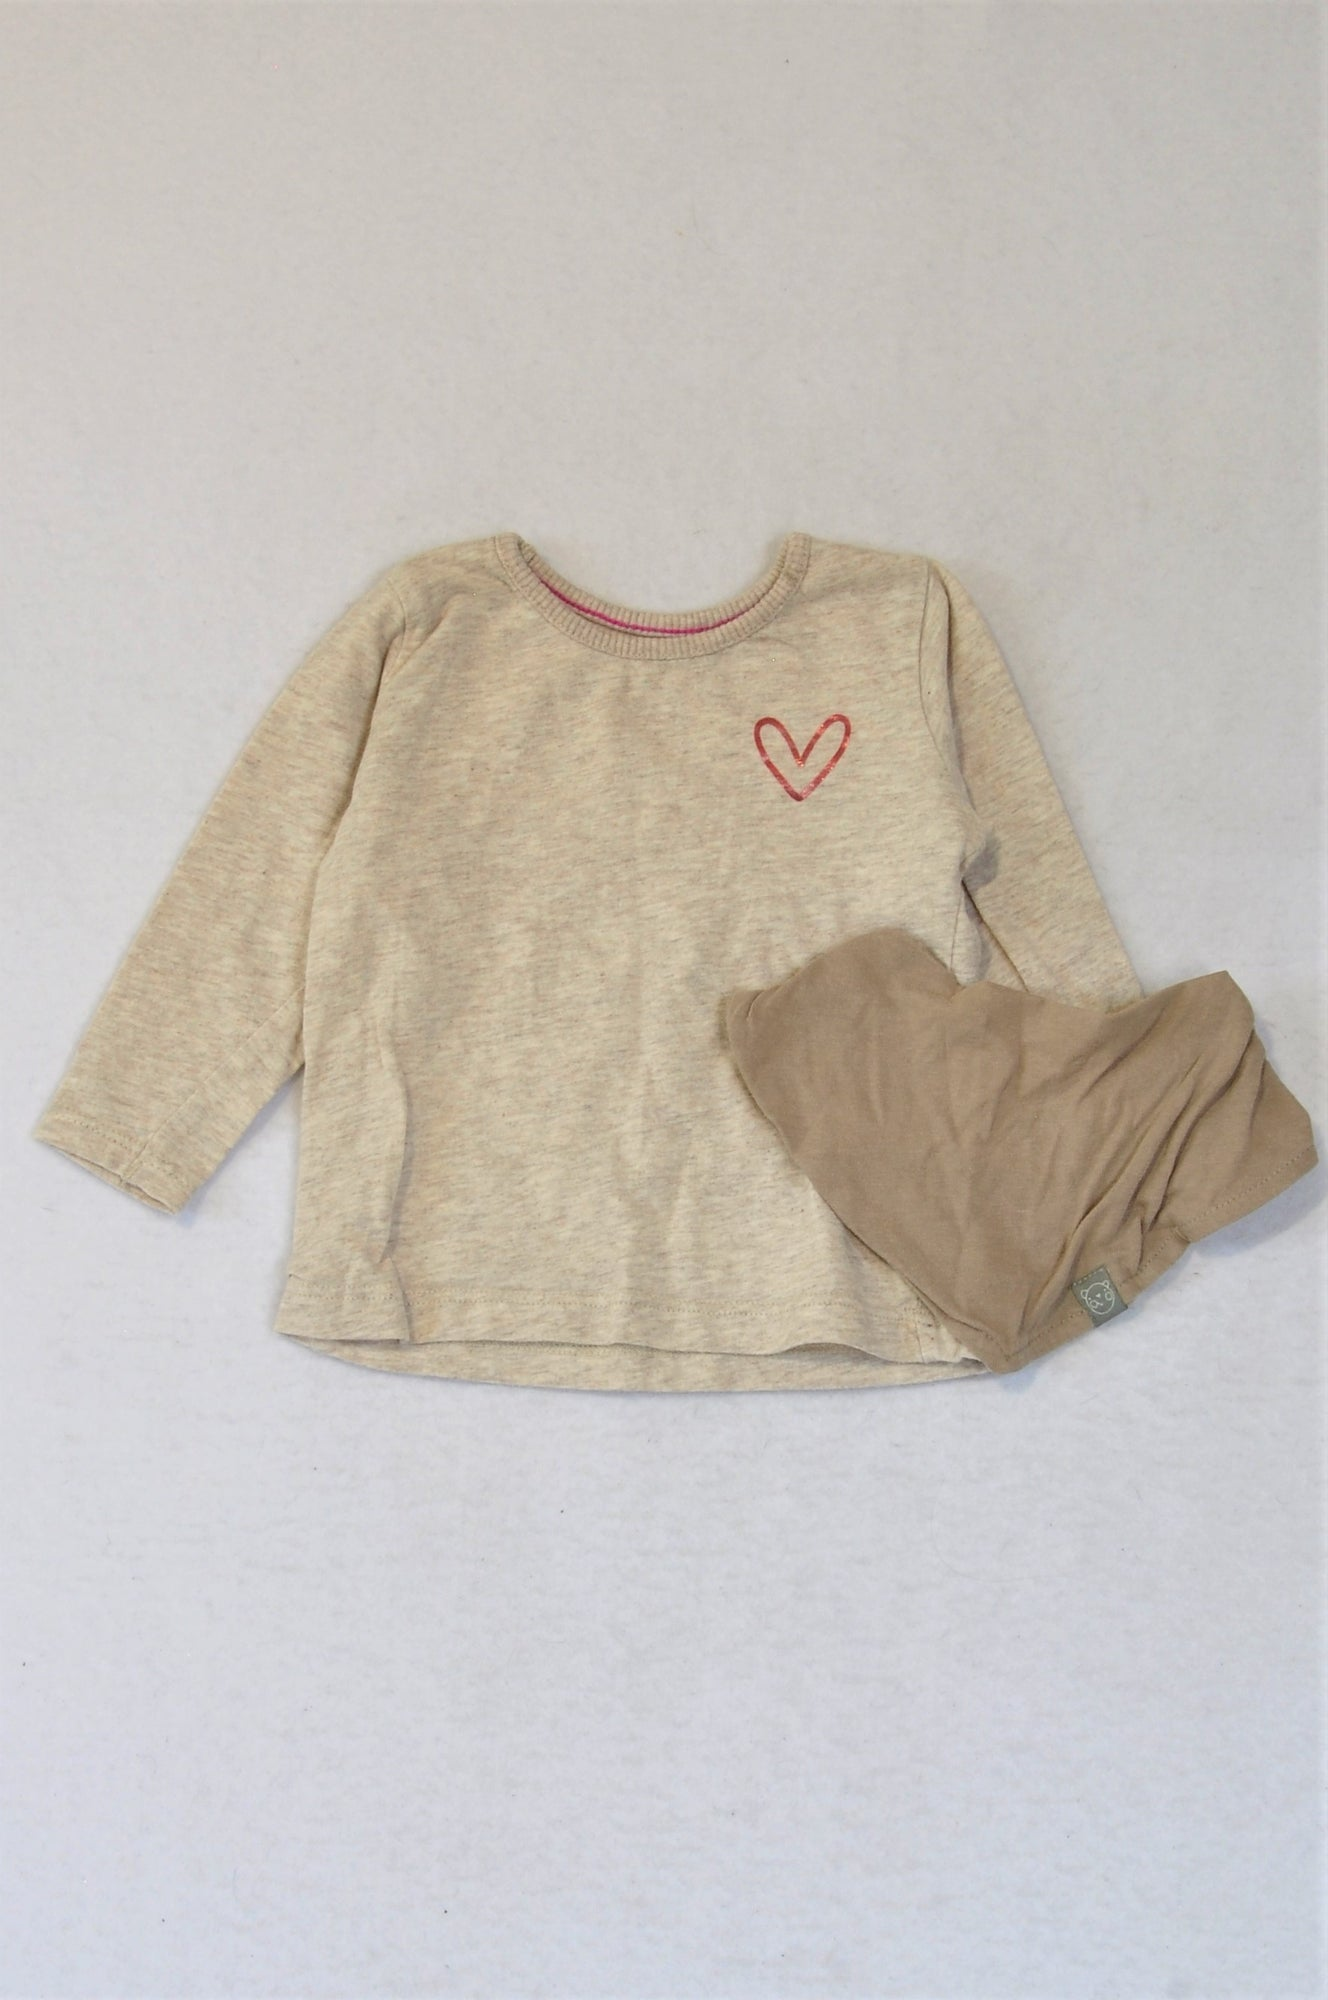 Woolworths Heathered Cream Long Sleeve Top With Brown Bib Outfit Girls 3-6 months